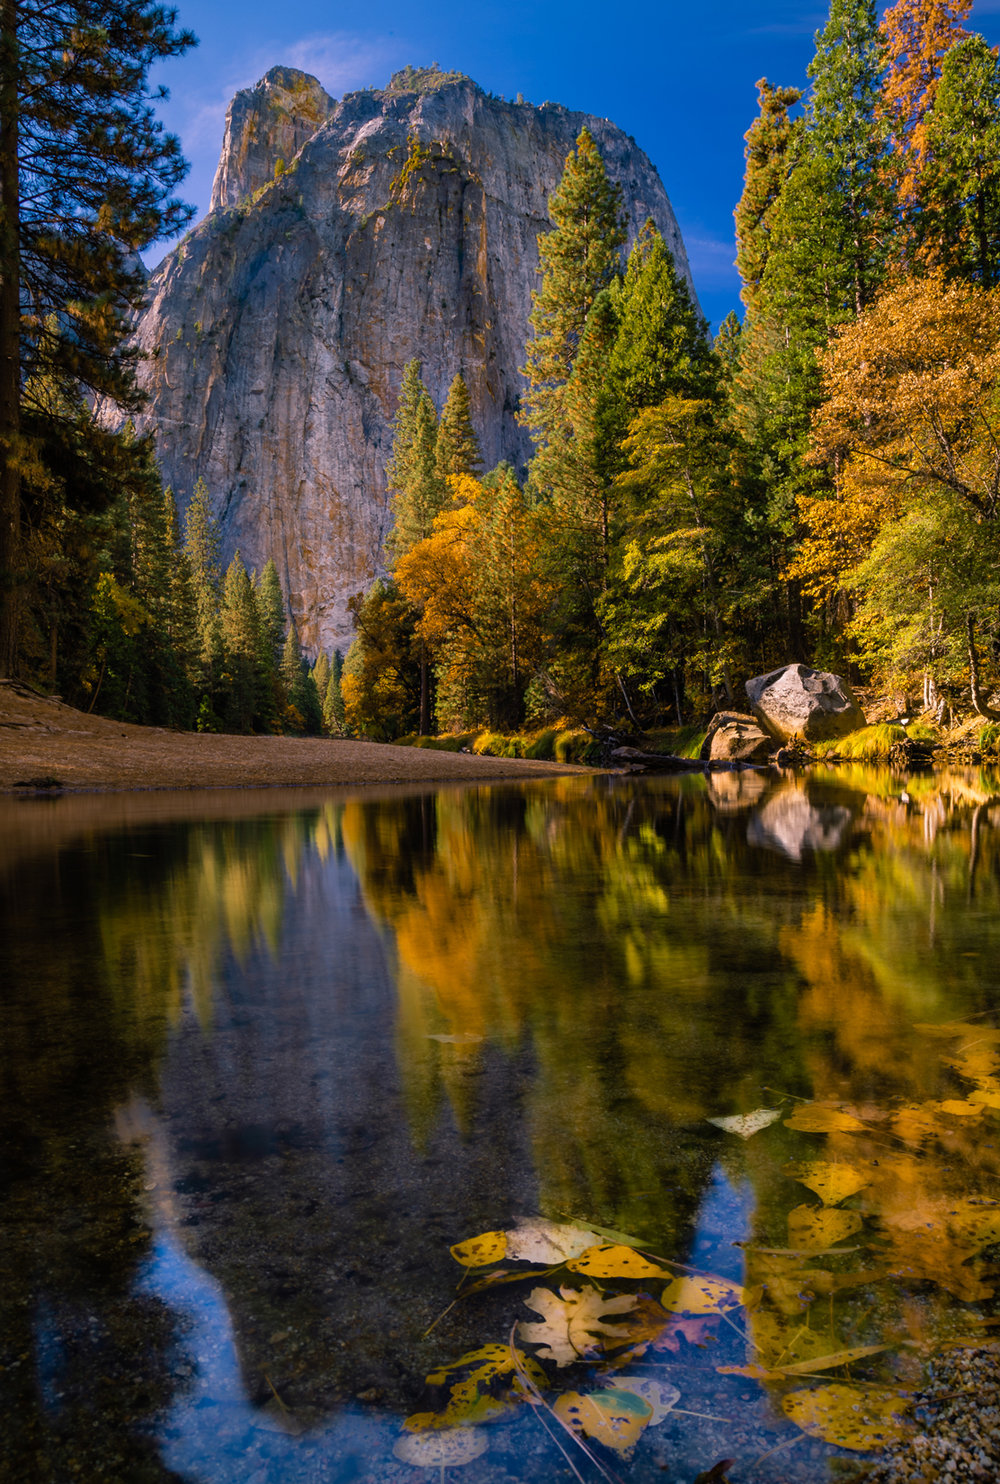 Cathedral Rock and the Merced River in Yosemite National Park